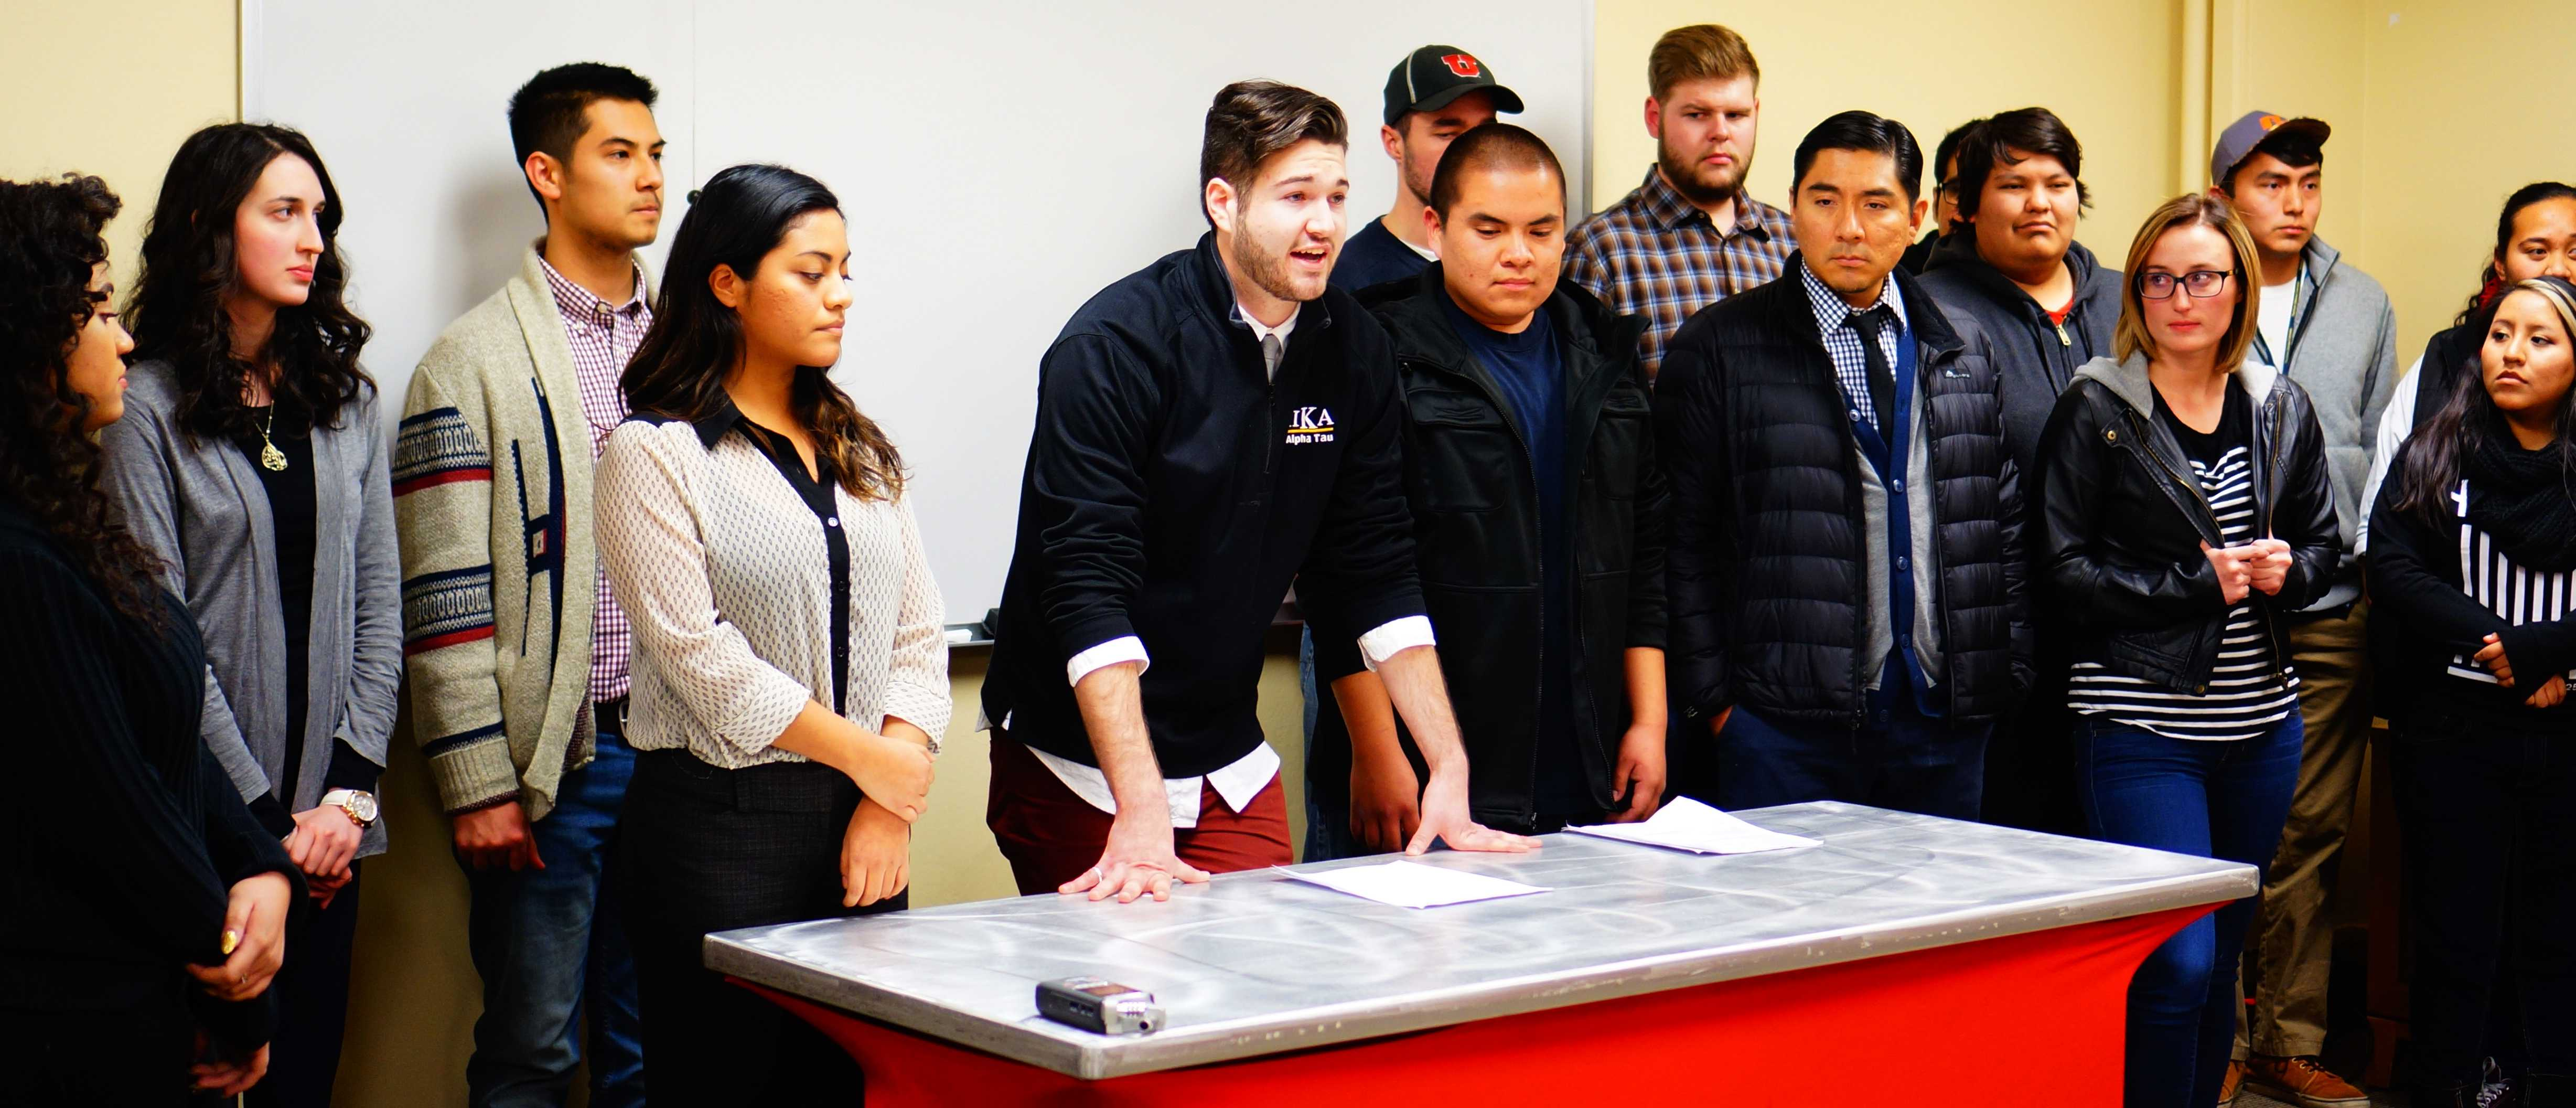 Anthony Fratto speaks about the Indigenous Peoples' Day Resolution during the ASUU Senate Meeting  at the U on Thursday, Jan. 28th, 2016. (Rishi Deka, Daily Utah Chronicle)